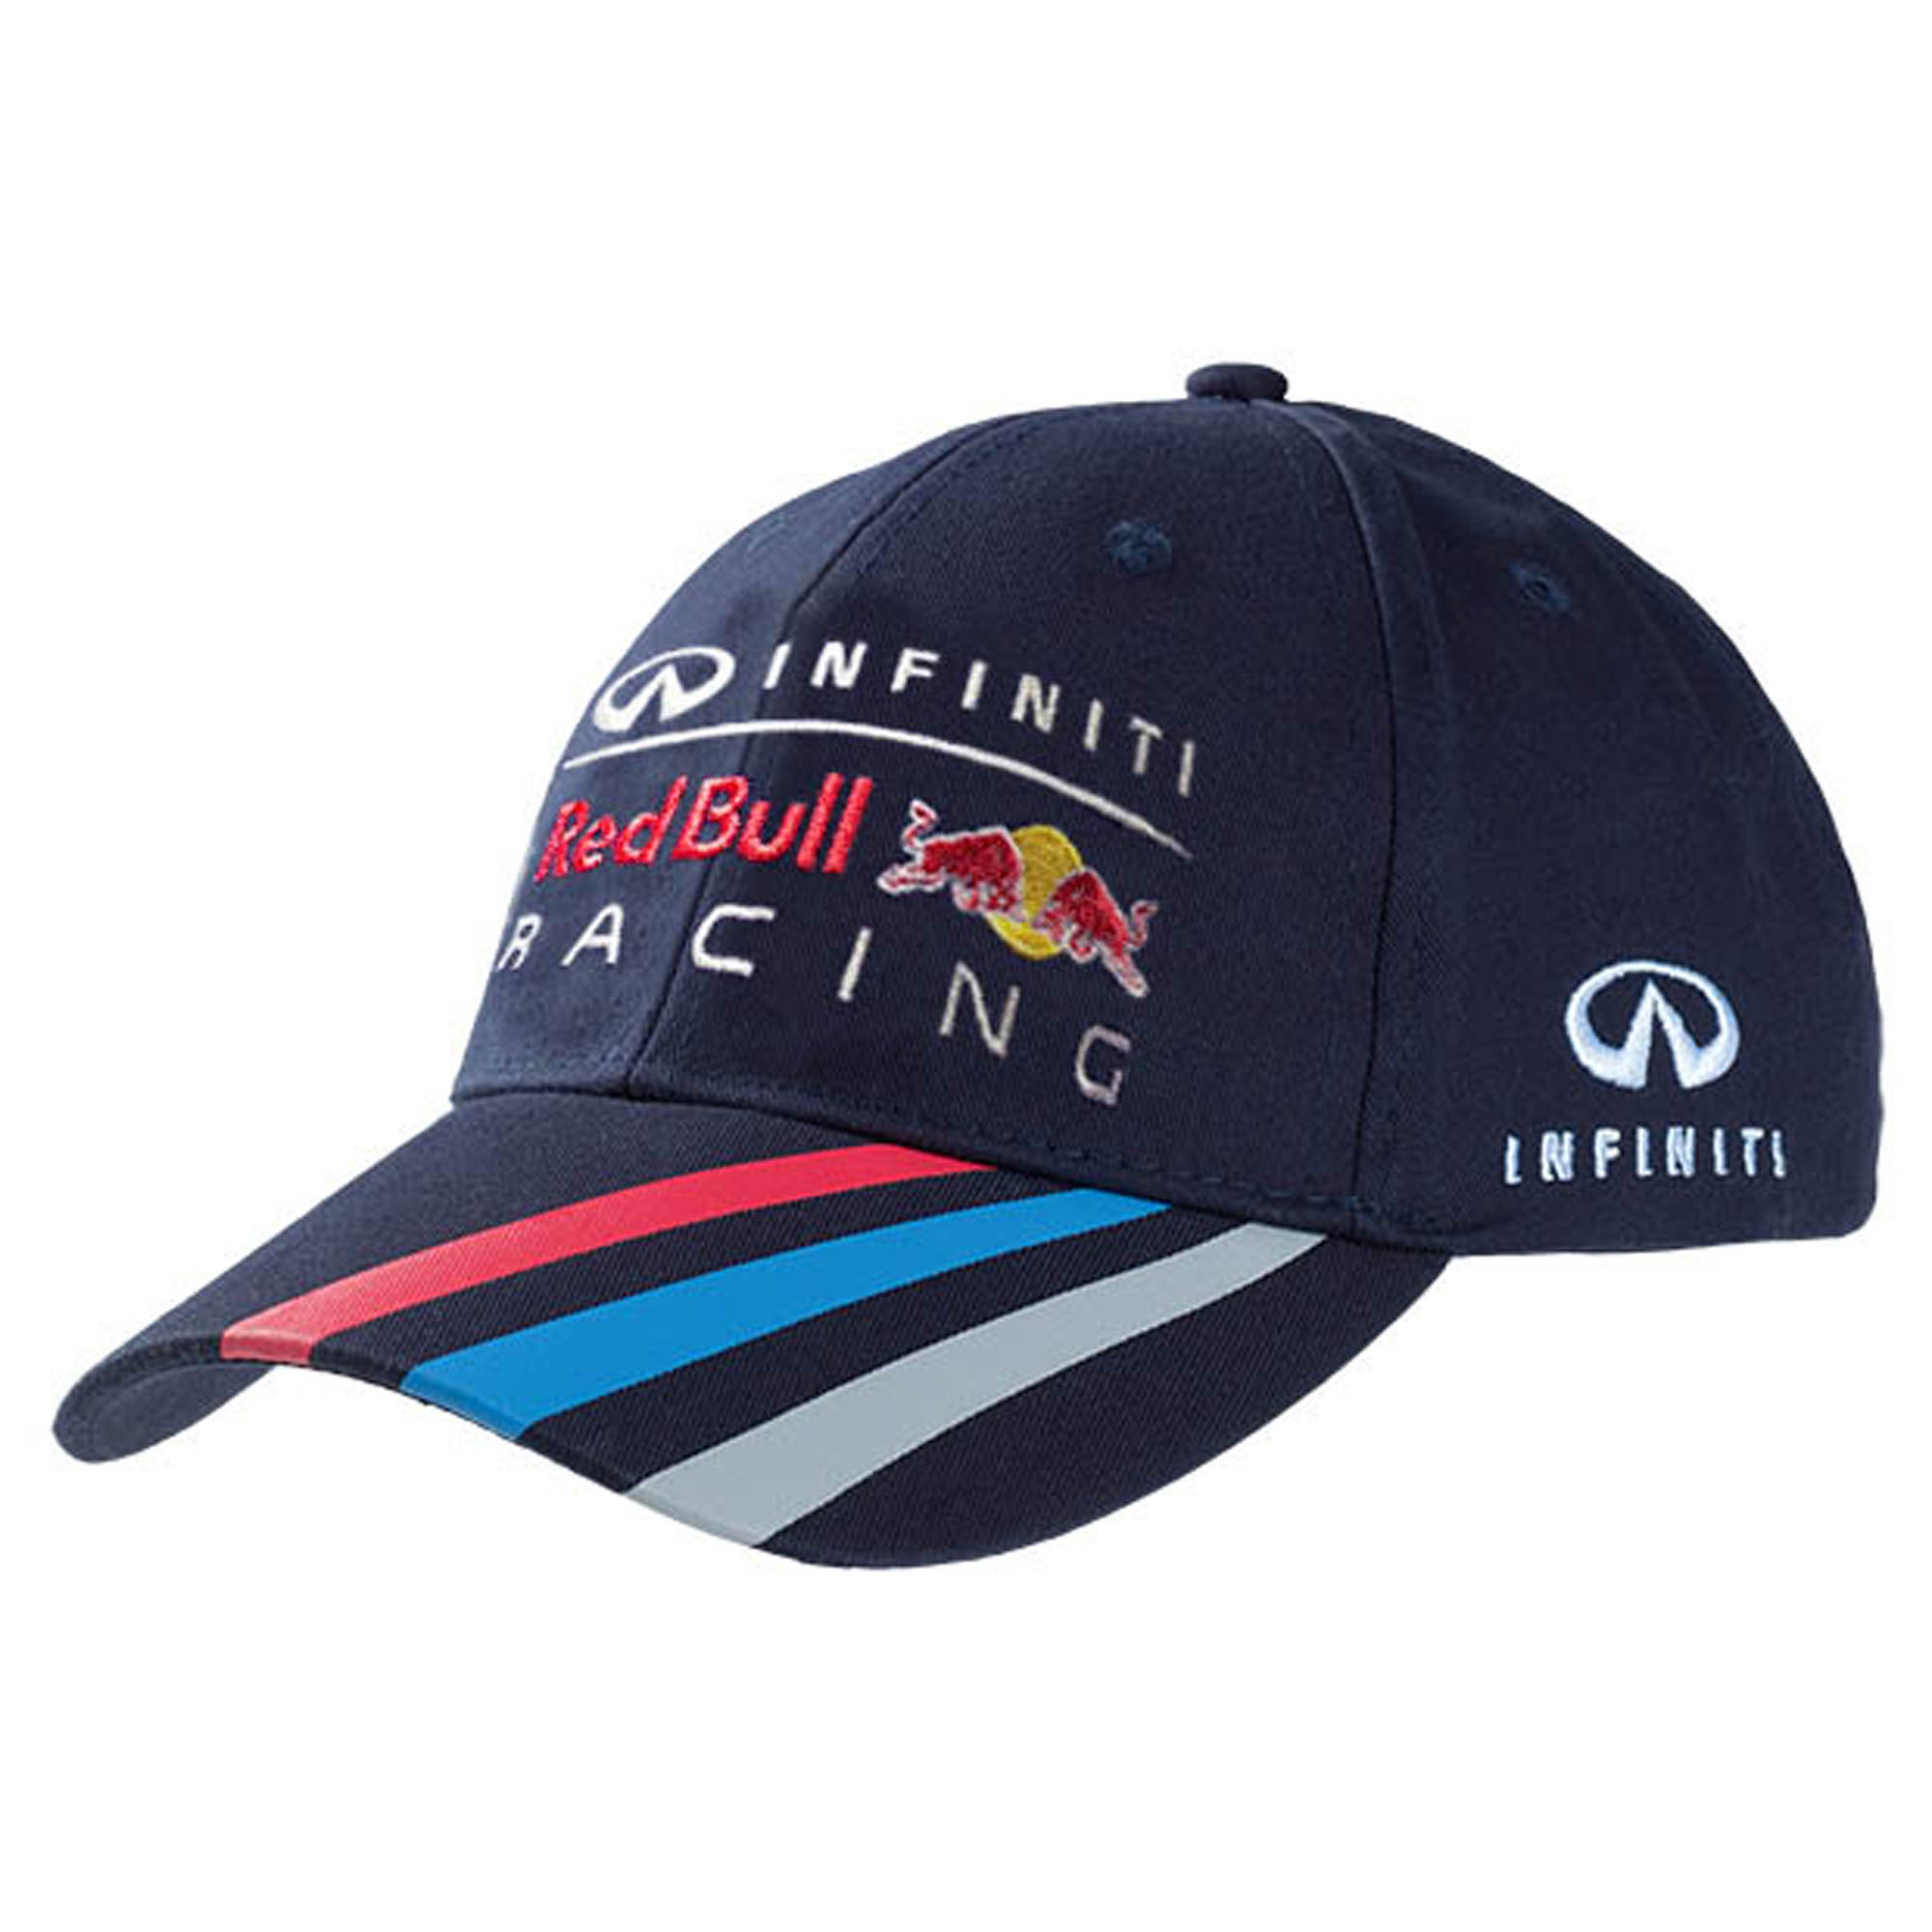 Infiniti Red Bull Racing 2013 Official Teamline Cap